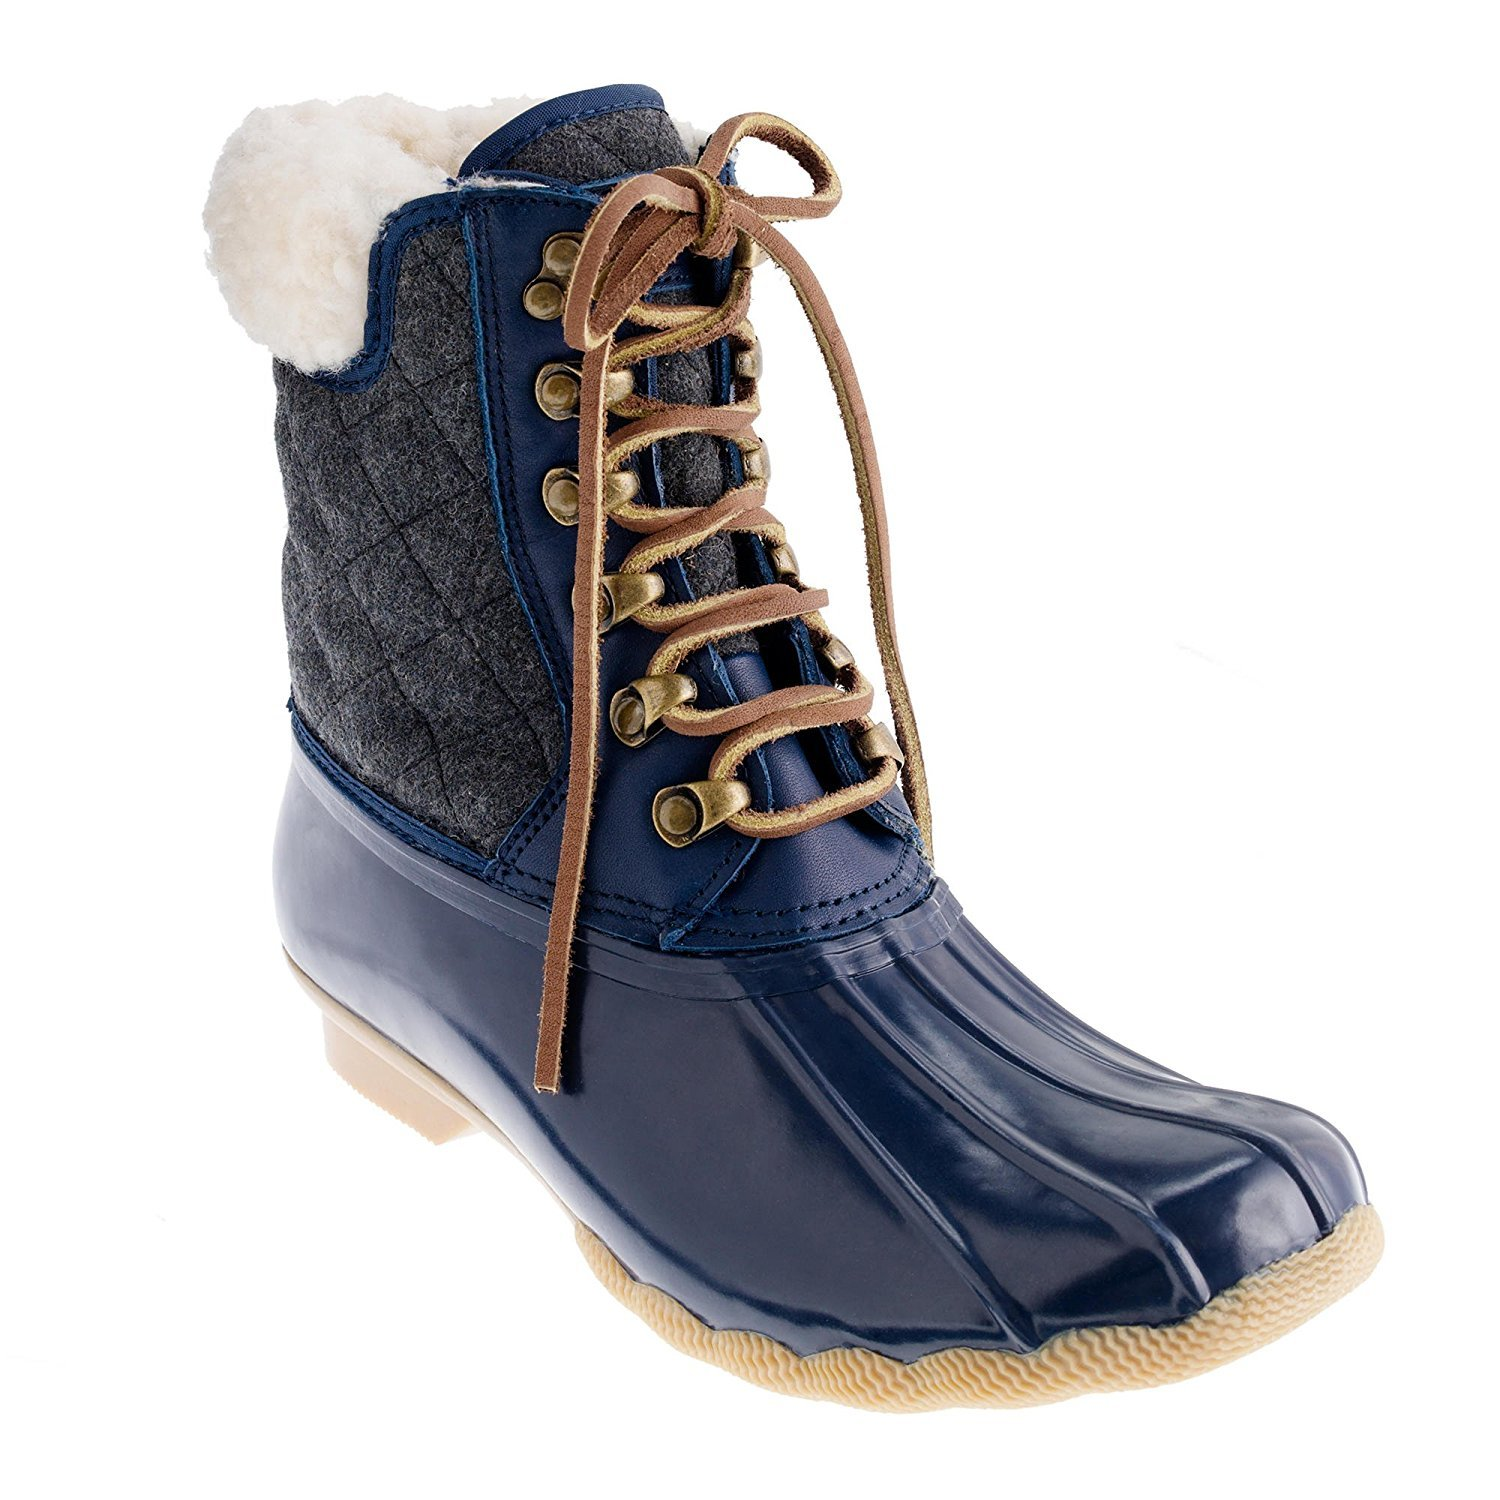 Sperry Top-Sider Women's Shearwater Rain Boot (8 B(M) US, Navy/Charcoal)